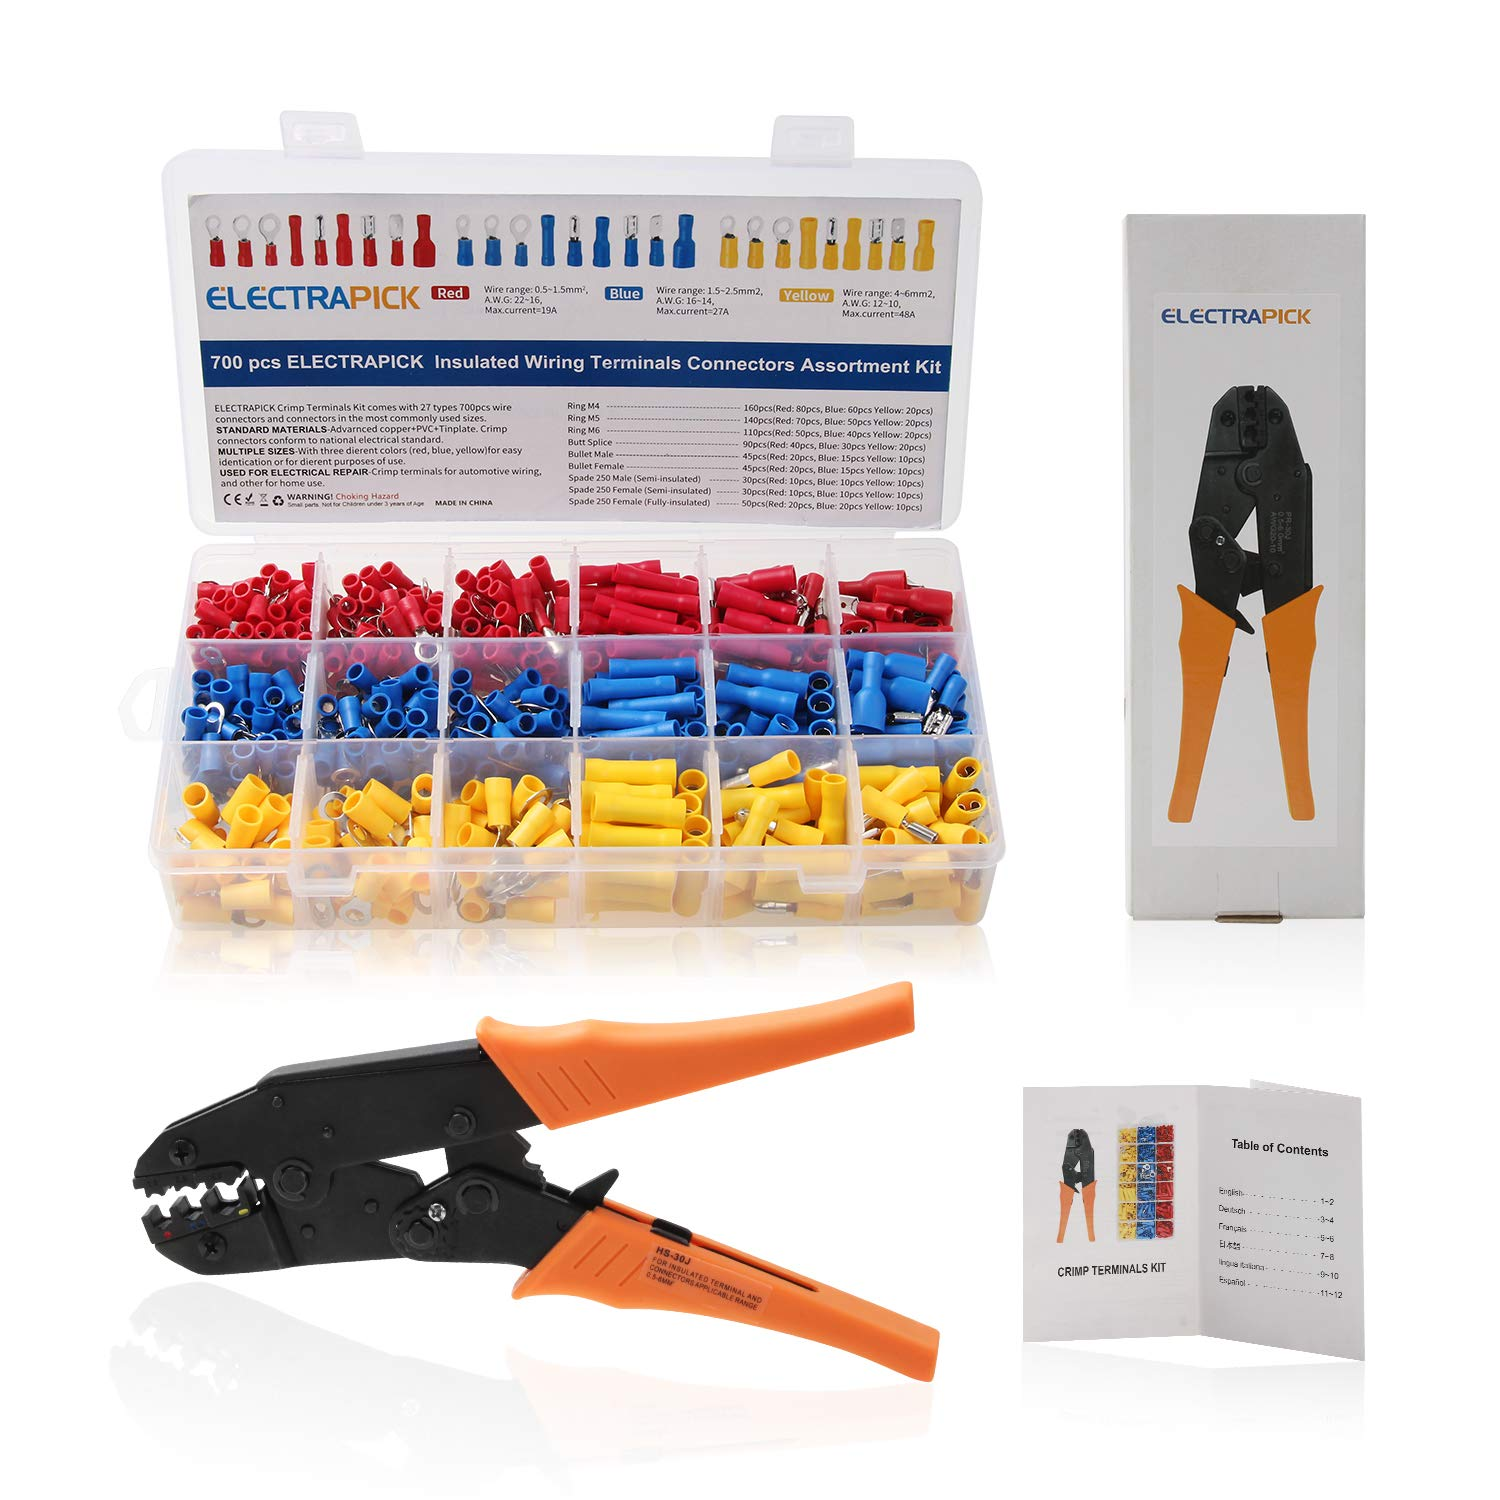 Insulated Terminal Crimping Tools, CHISTAR Professional Self-adjustable Ratchet Wire Crimpers with 700pcs Wire Electrical Connectors Assortment - Butt, Ring, Spade, Quick Disconnect for AWG22-10